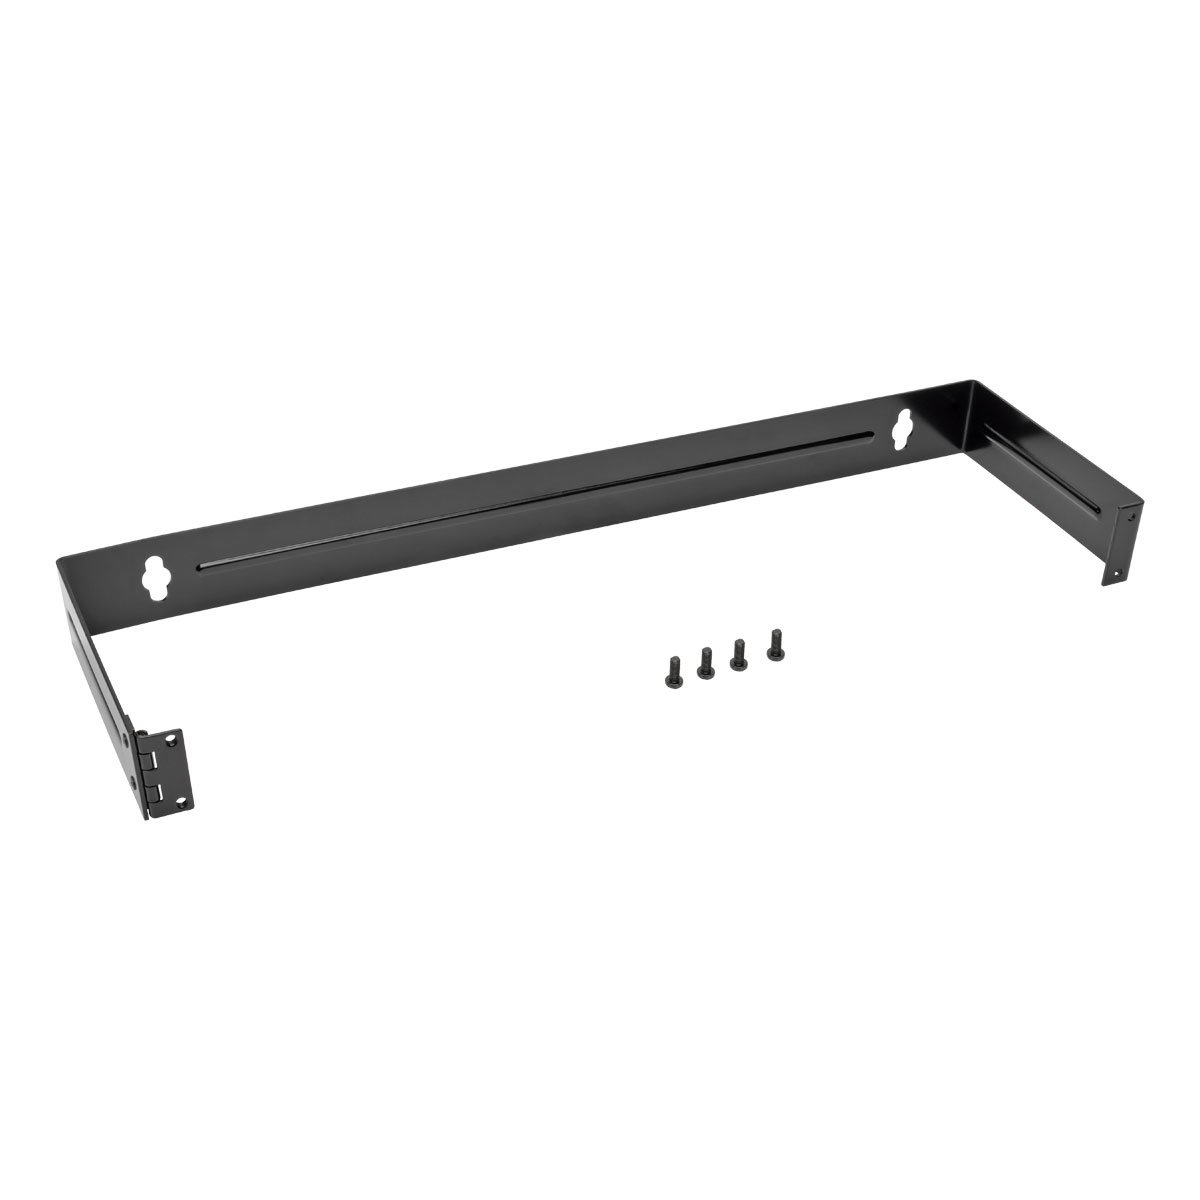 An image of Tripp lite 1u hinged wall-mount patch panel bracket